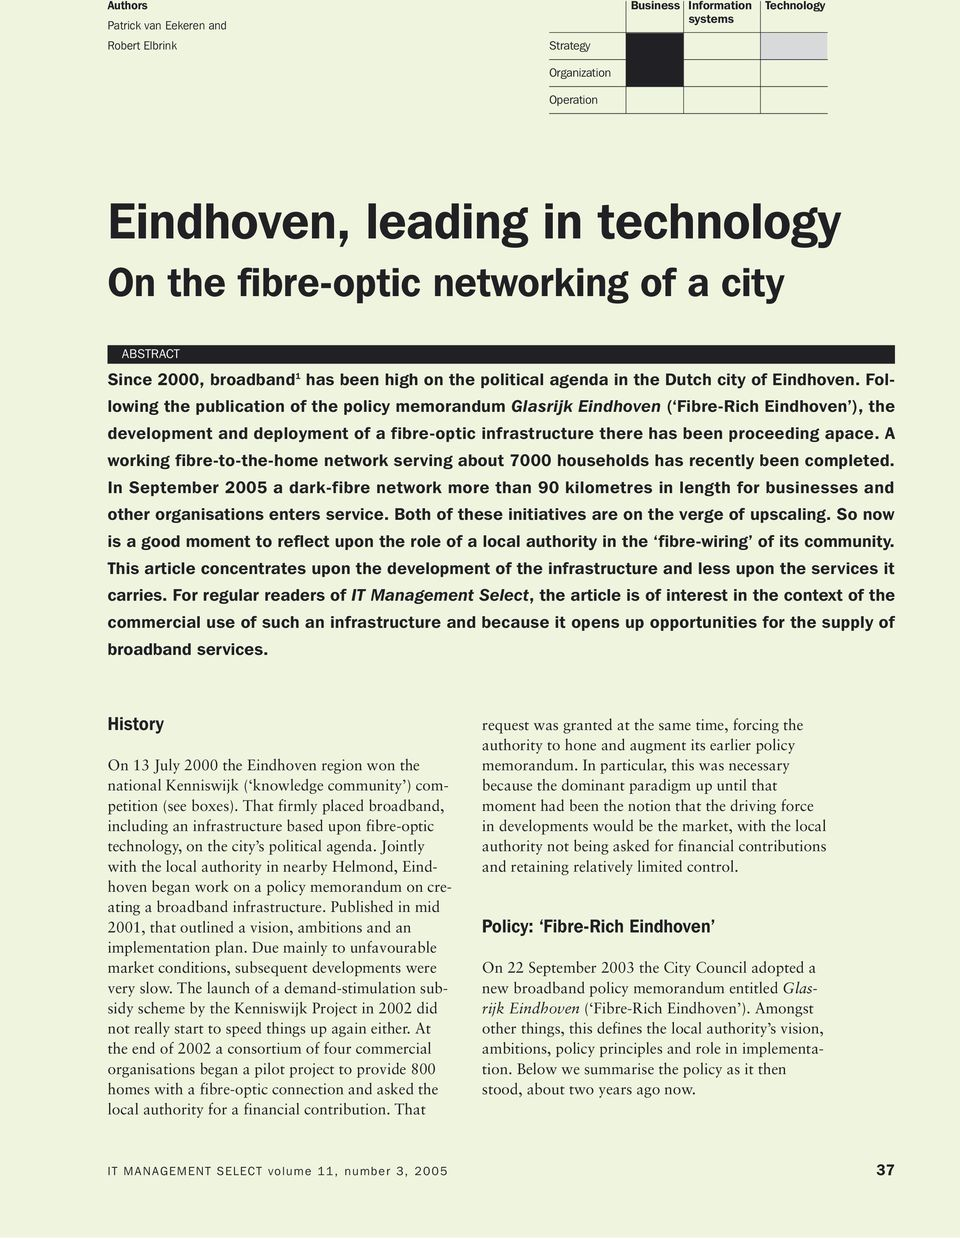 Following the publication of the policy memorandum Glasrijk Eindhoven ( Fibre-Rich Eindhoven ), the development and deployment of a fibre-optic infrastructure there has been proceeding apace.